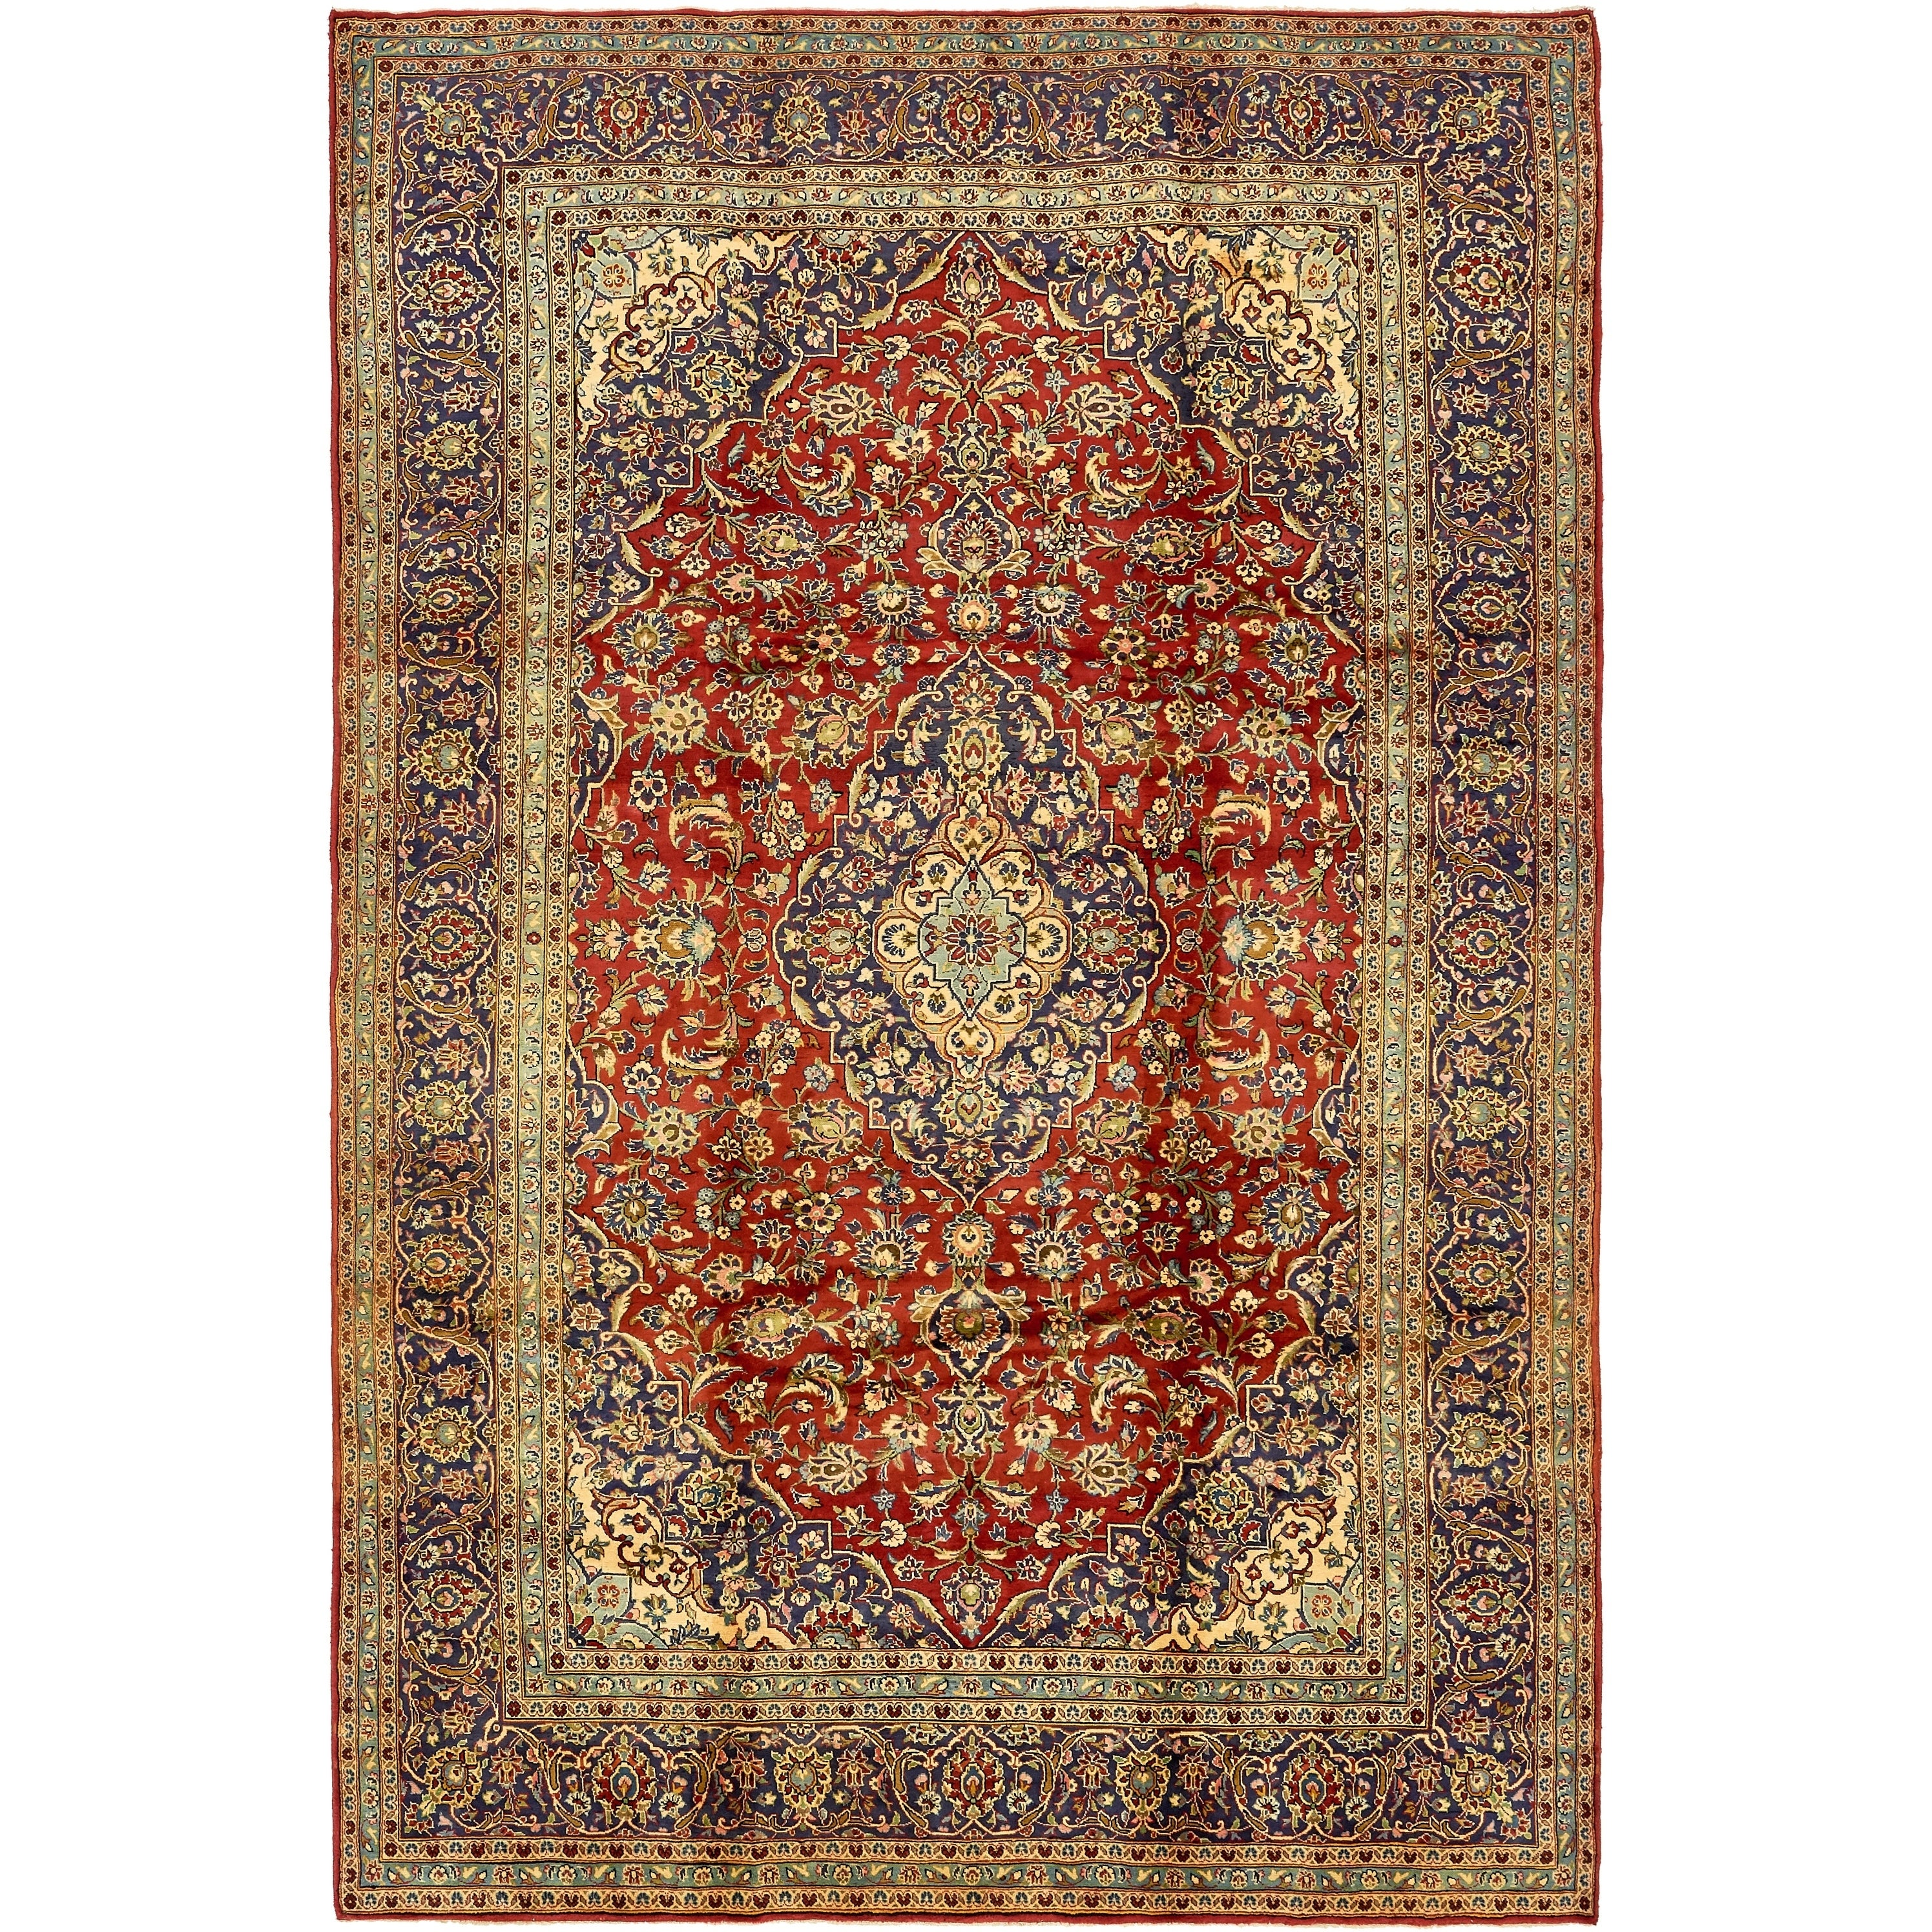 Hand Knotted Kashan Semi Antique Wool Area Rug - 8' 2 x 12' 4 (Red - 8' 2 x 12' 4)